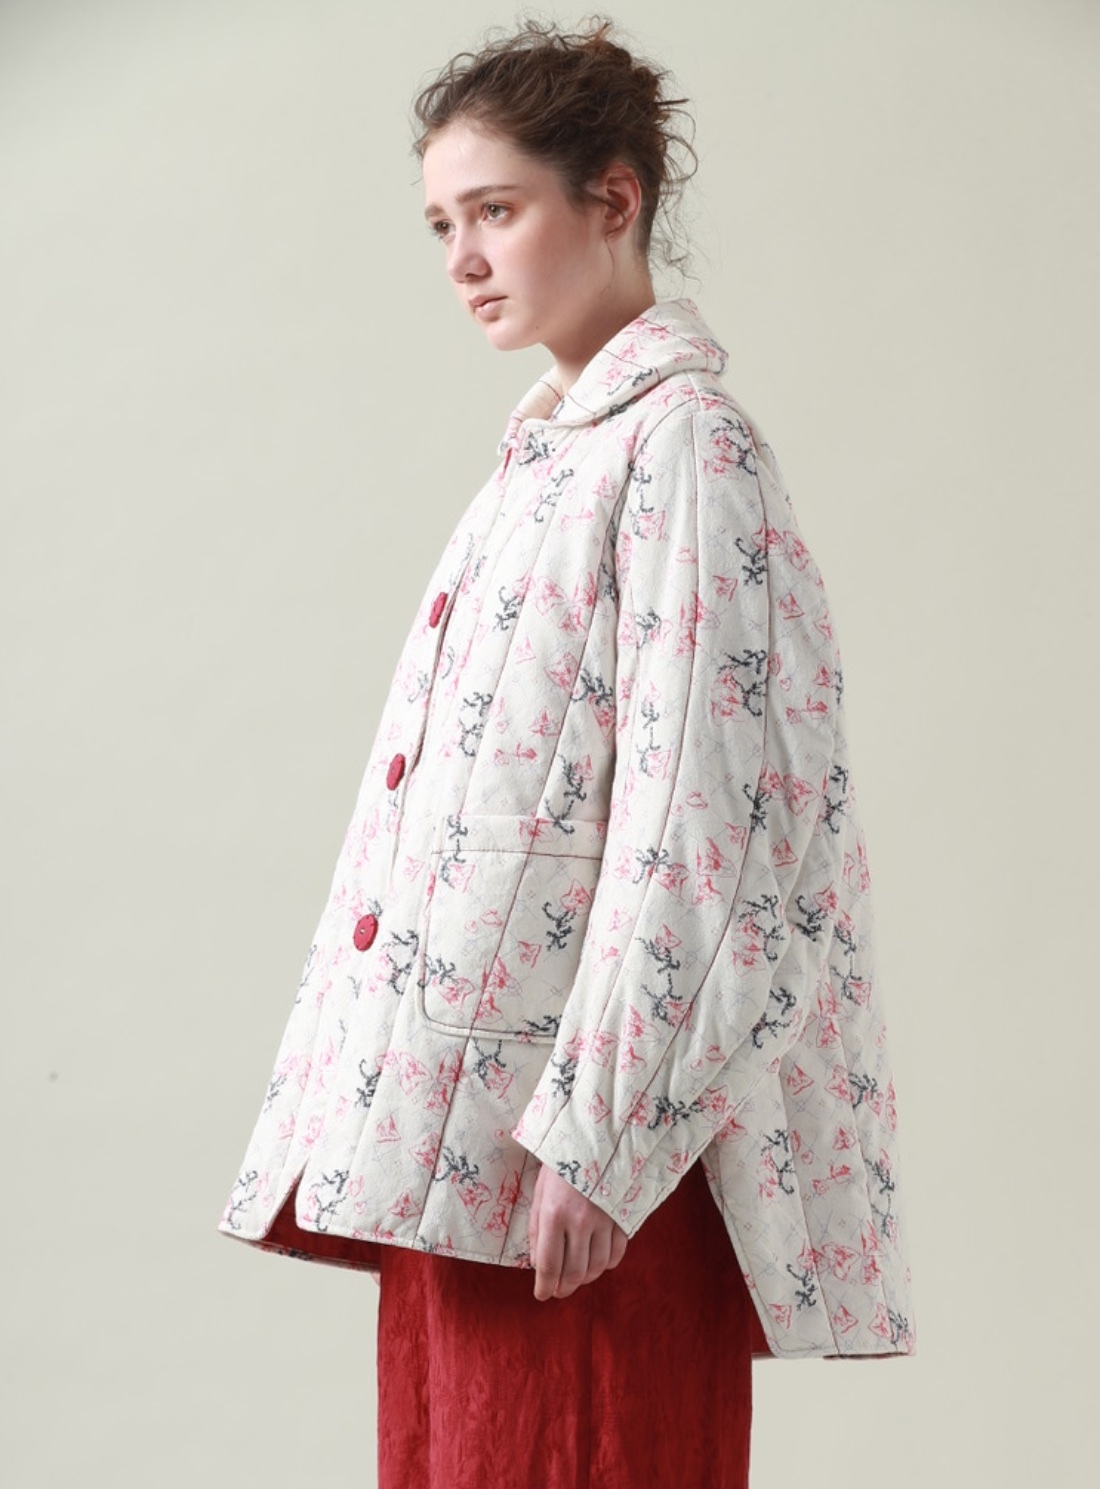 23281-young-british-designers-floral-sprig-print-quilted-jacket-by-renli-su_raw.jpg